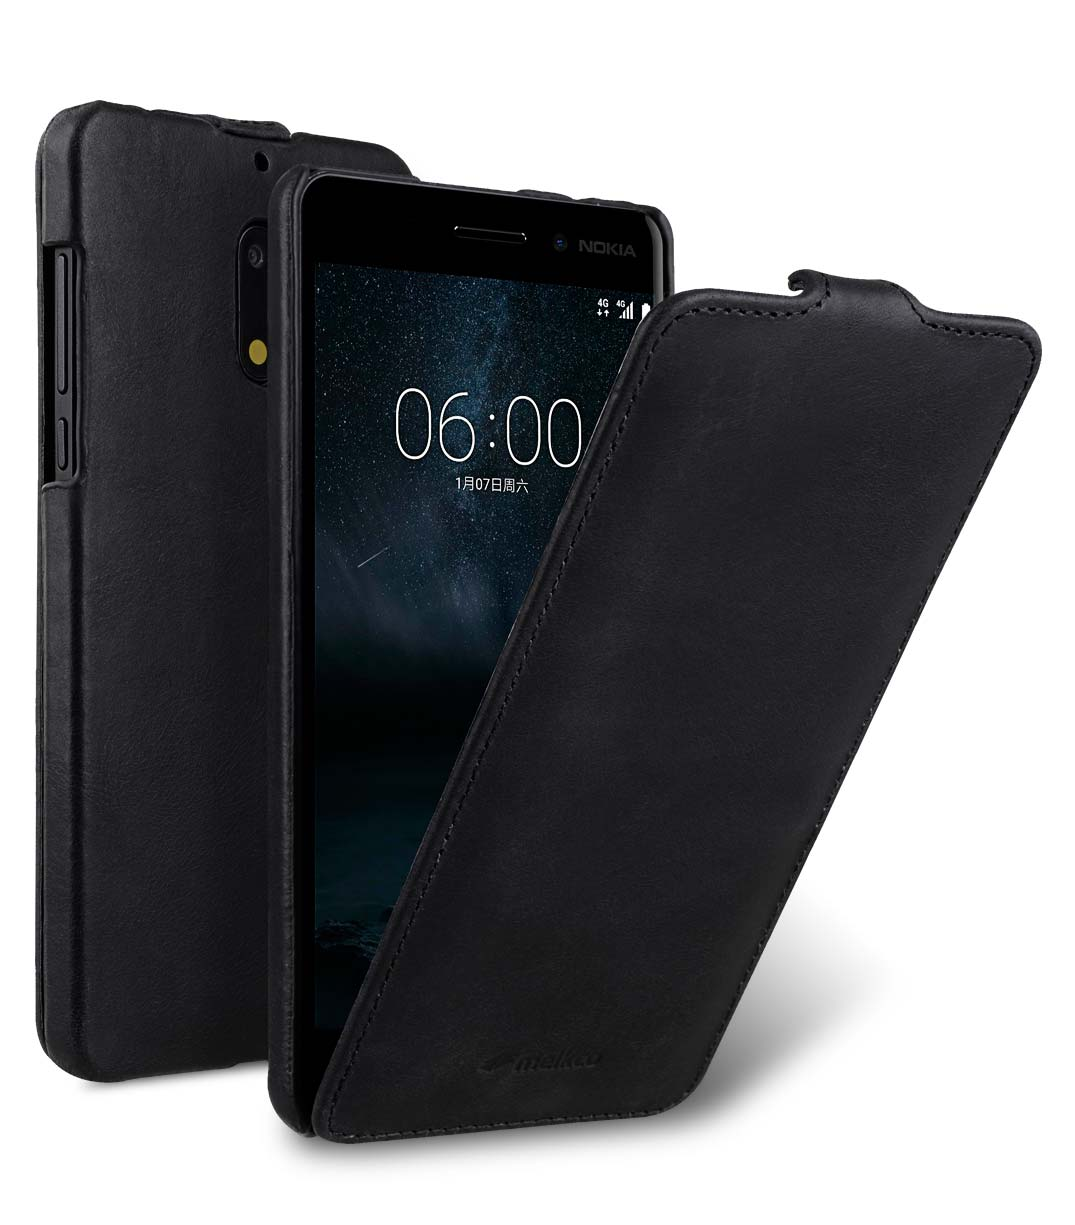 Premium Leather Case for Nokia 6 - Jacka Type